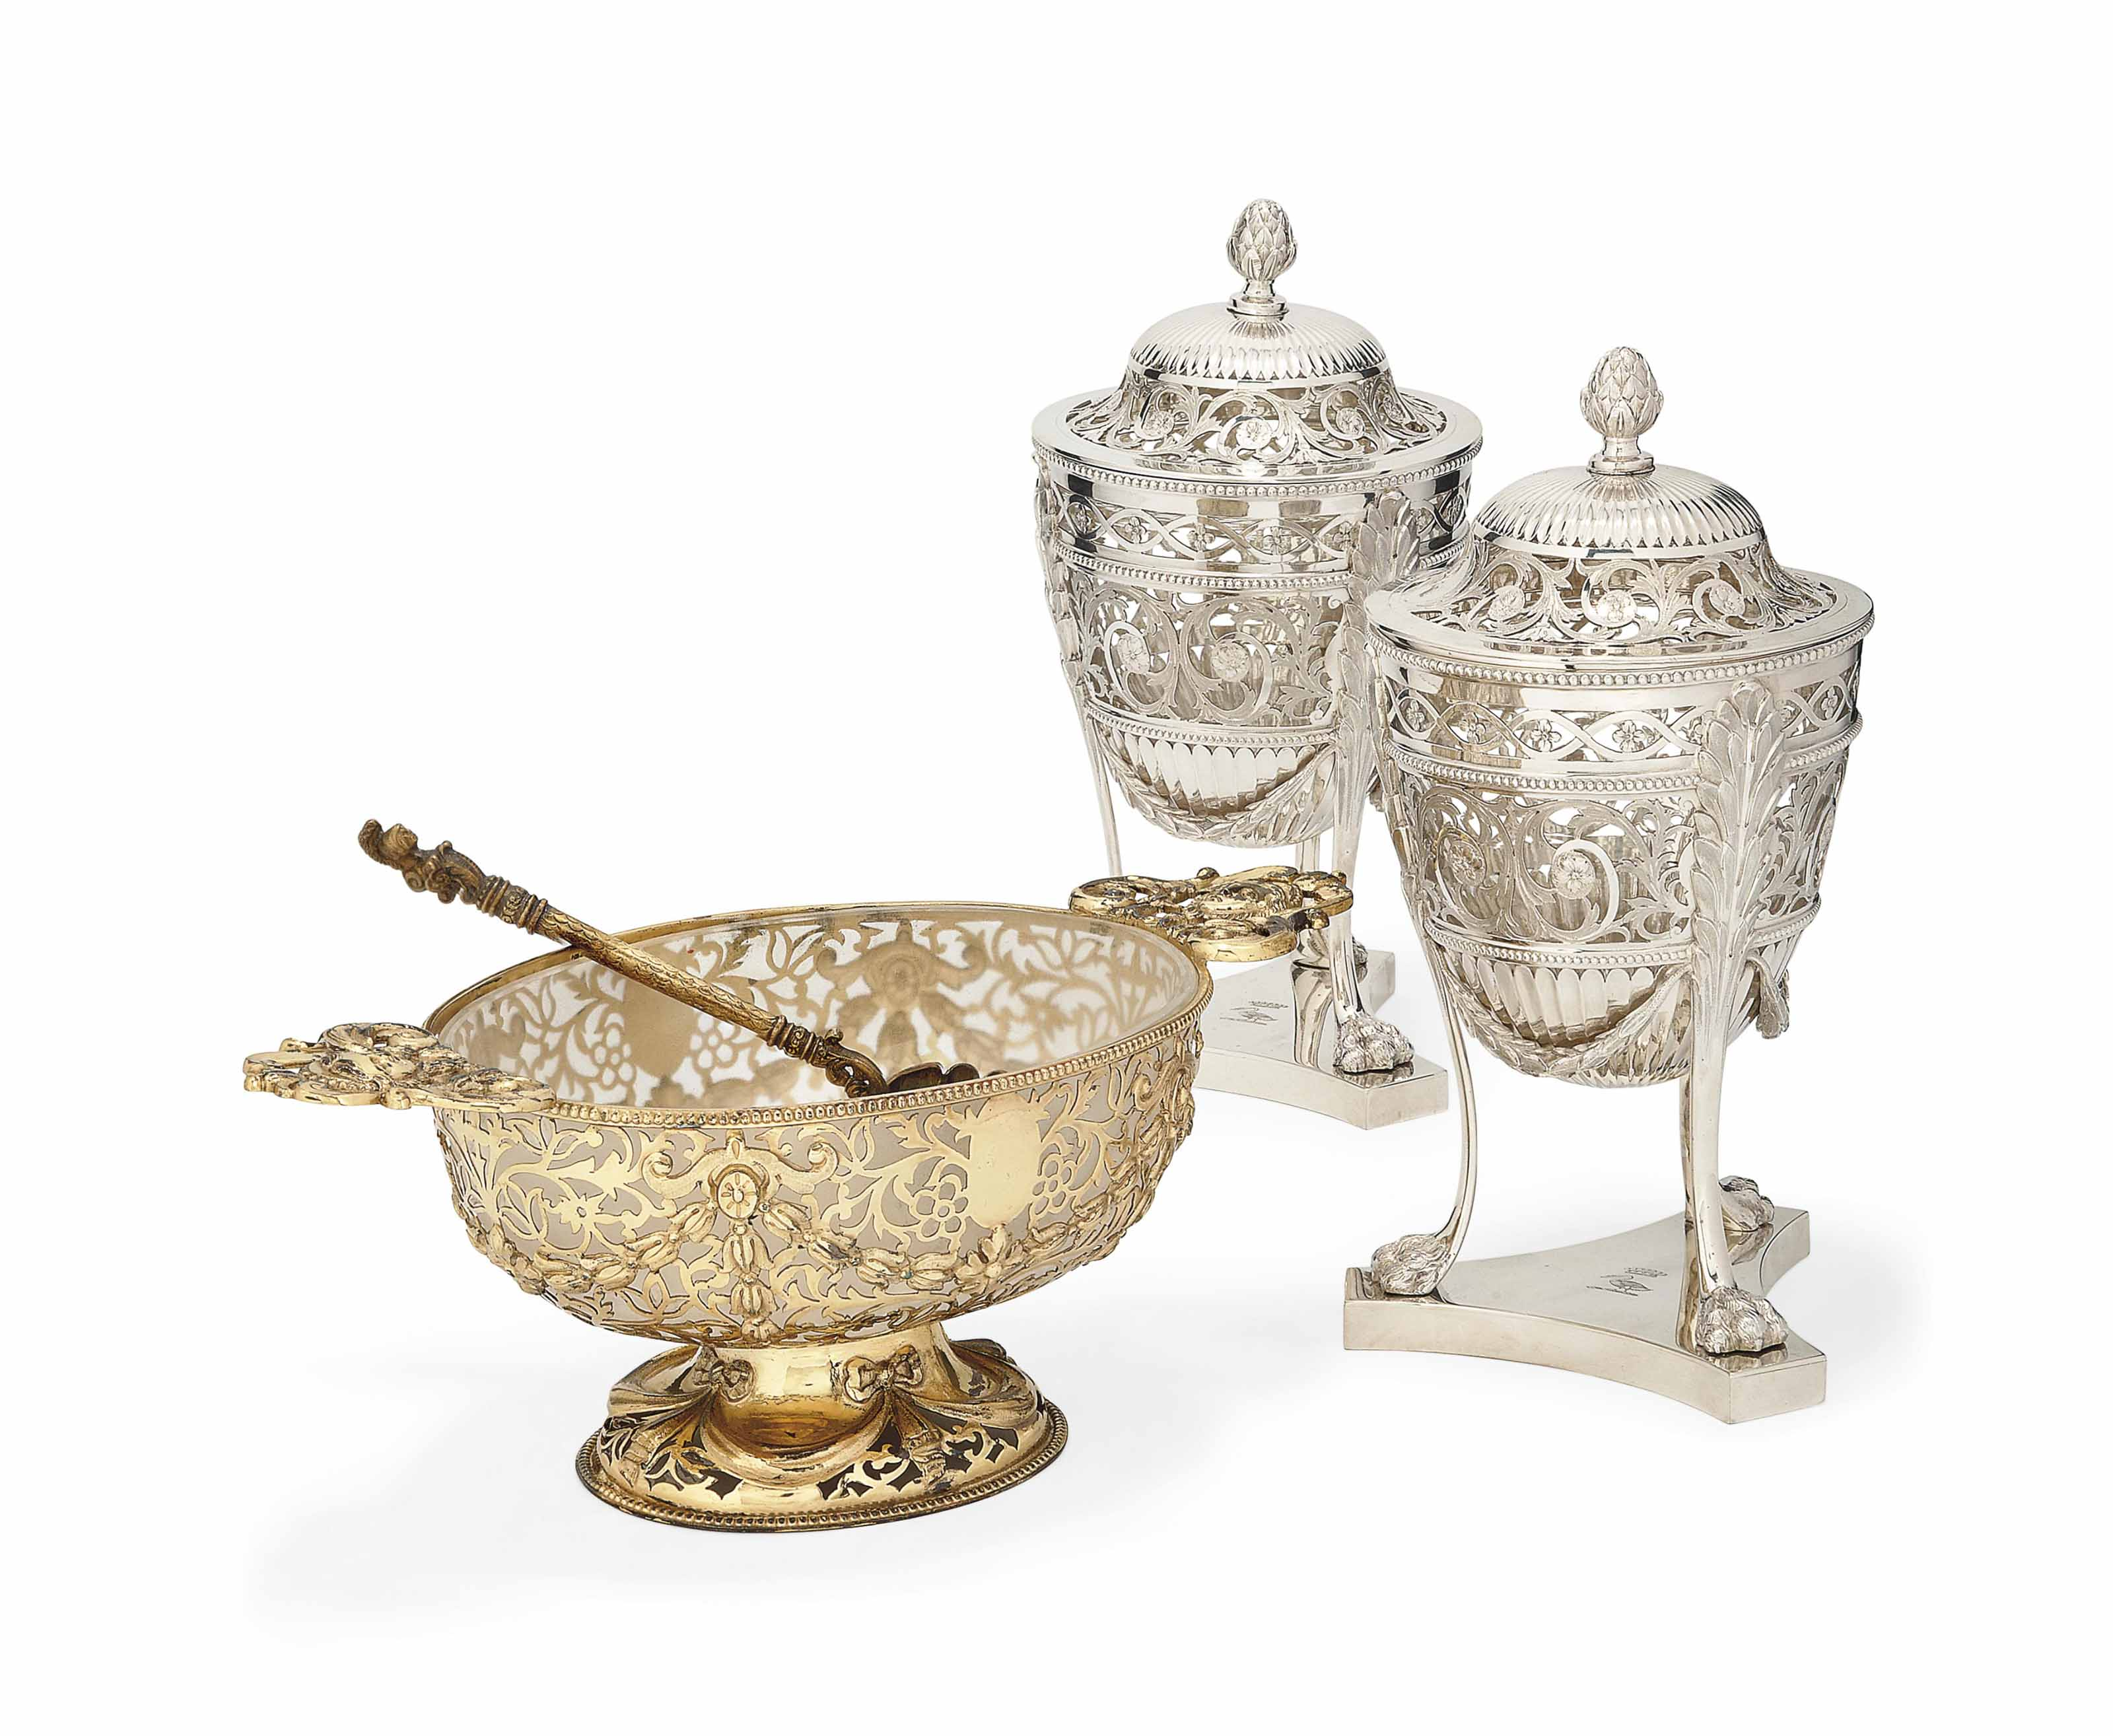 A PAIR OF VICTORIAN SILVER SUGAR VASES OF URN FORM